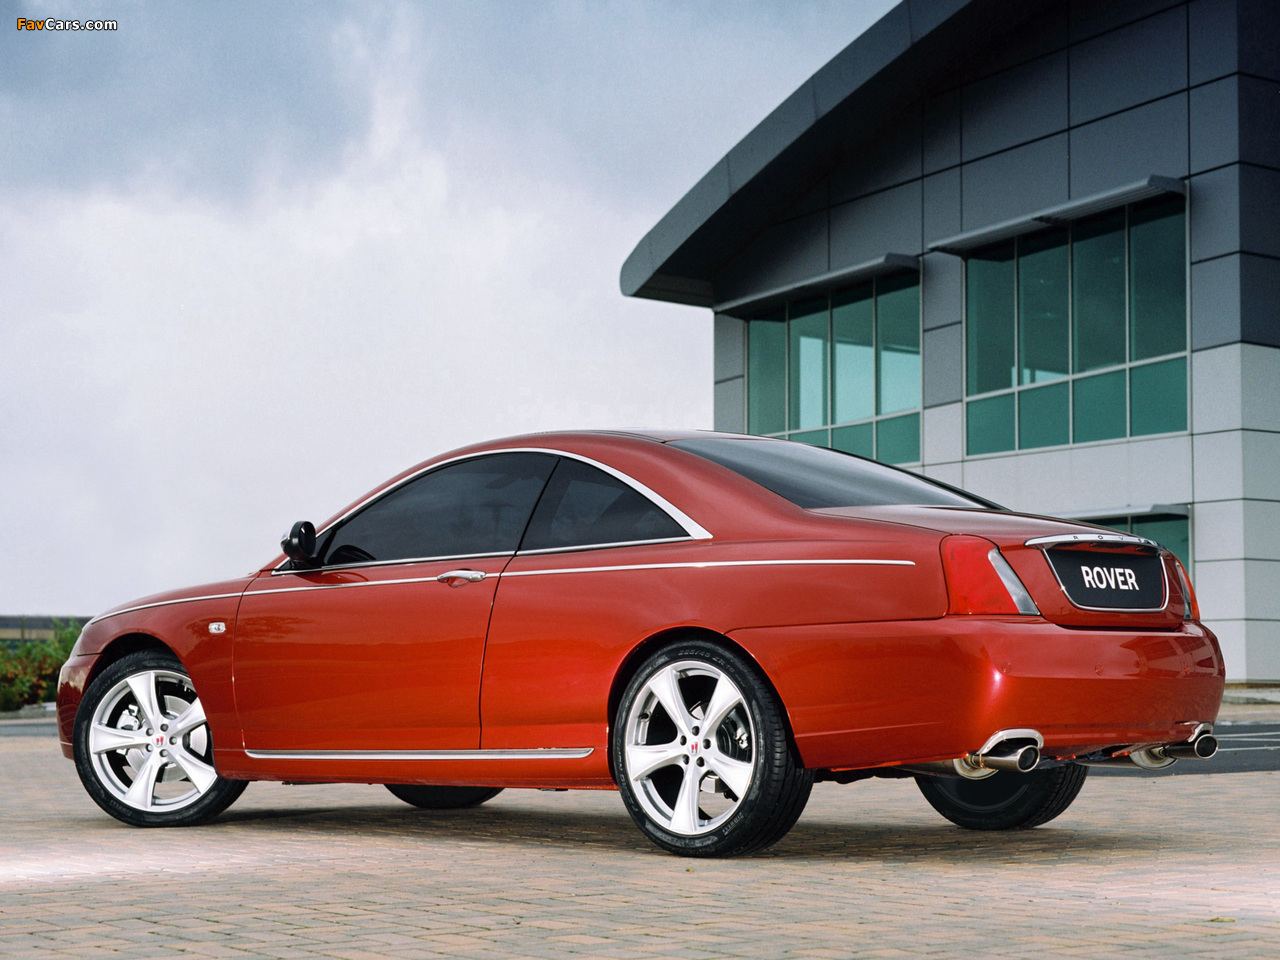 Rover 75 Coupe Concept 2004 images (1280 x 960)